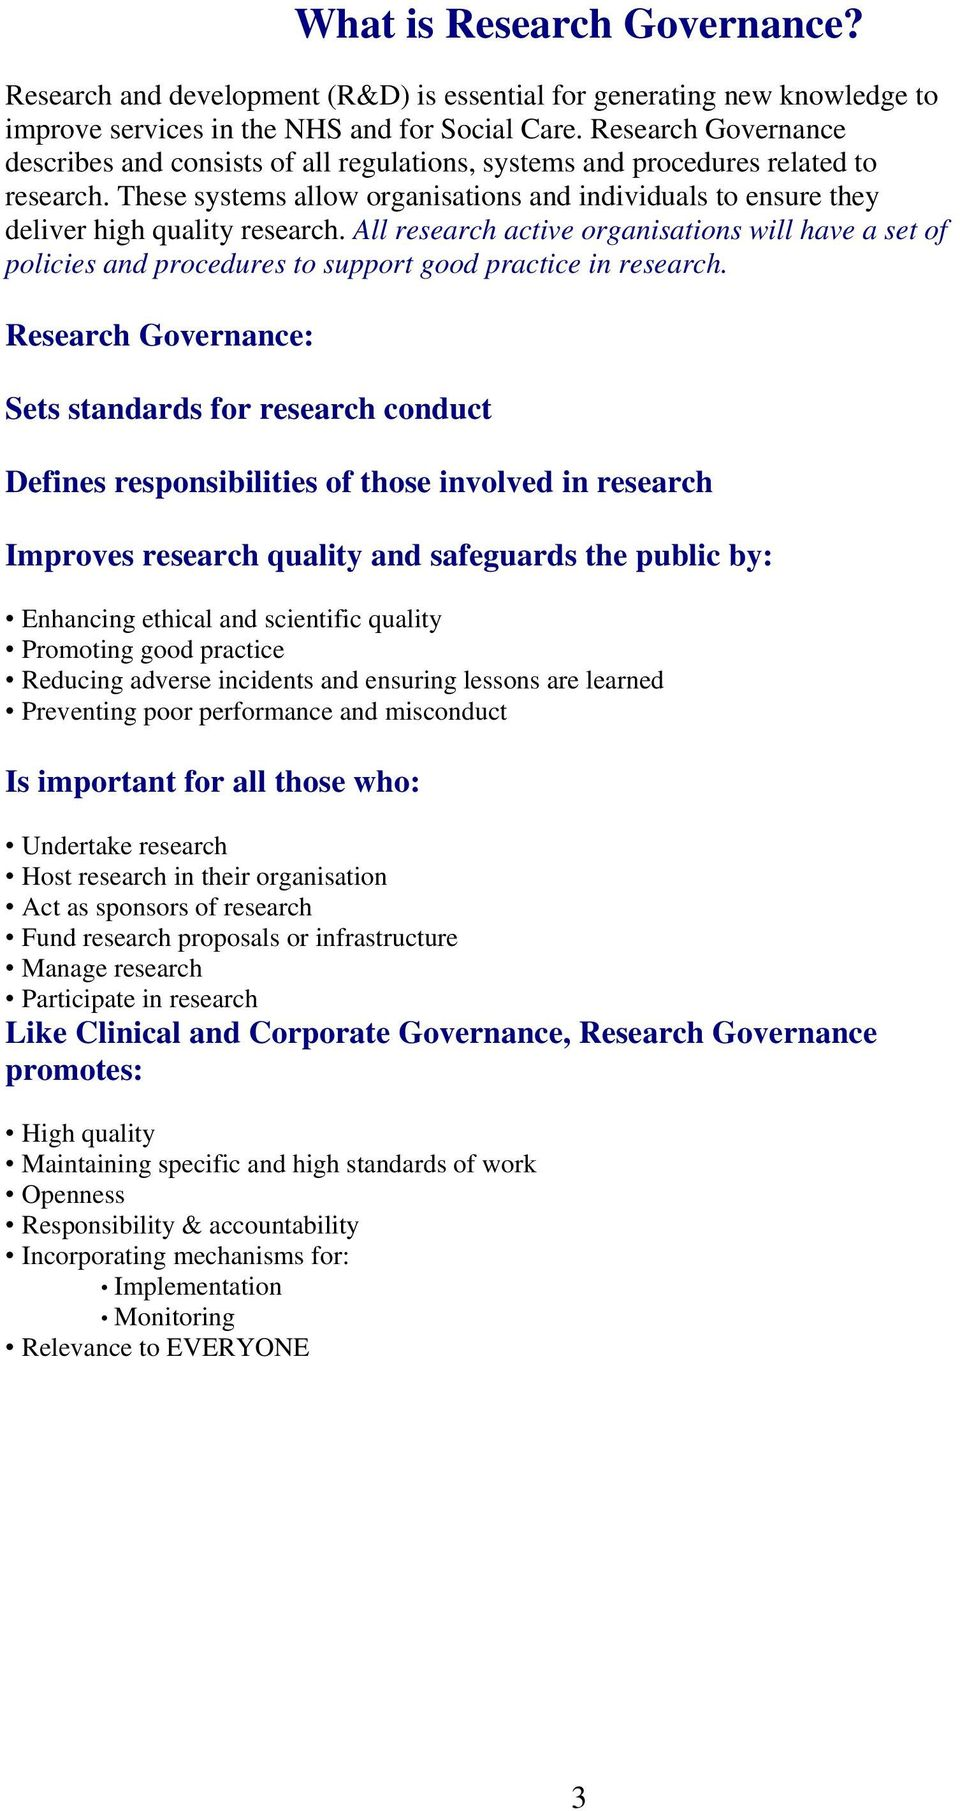 These systems allow organisations and individuals to ensure they deliver high quality research.